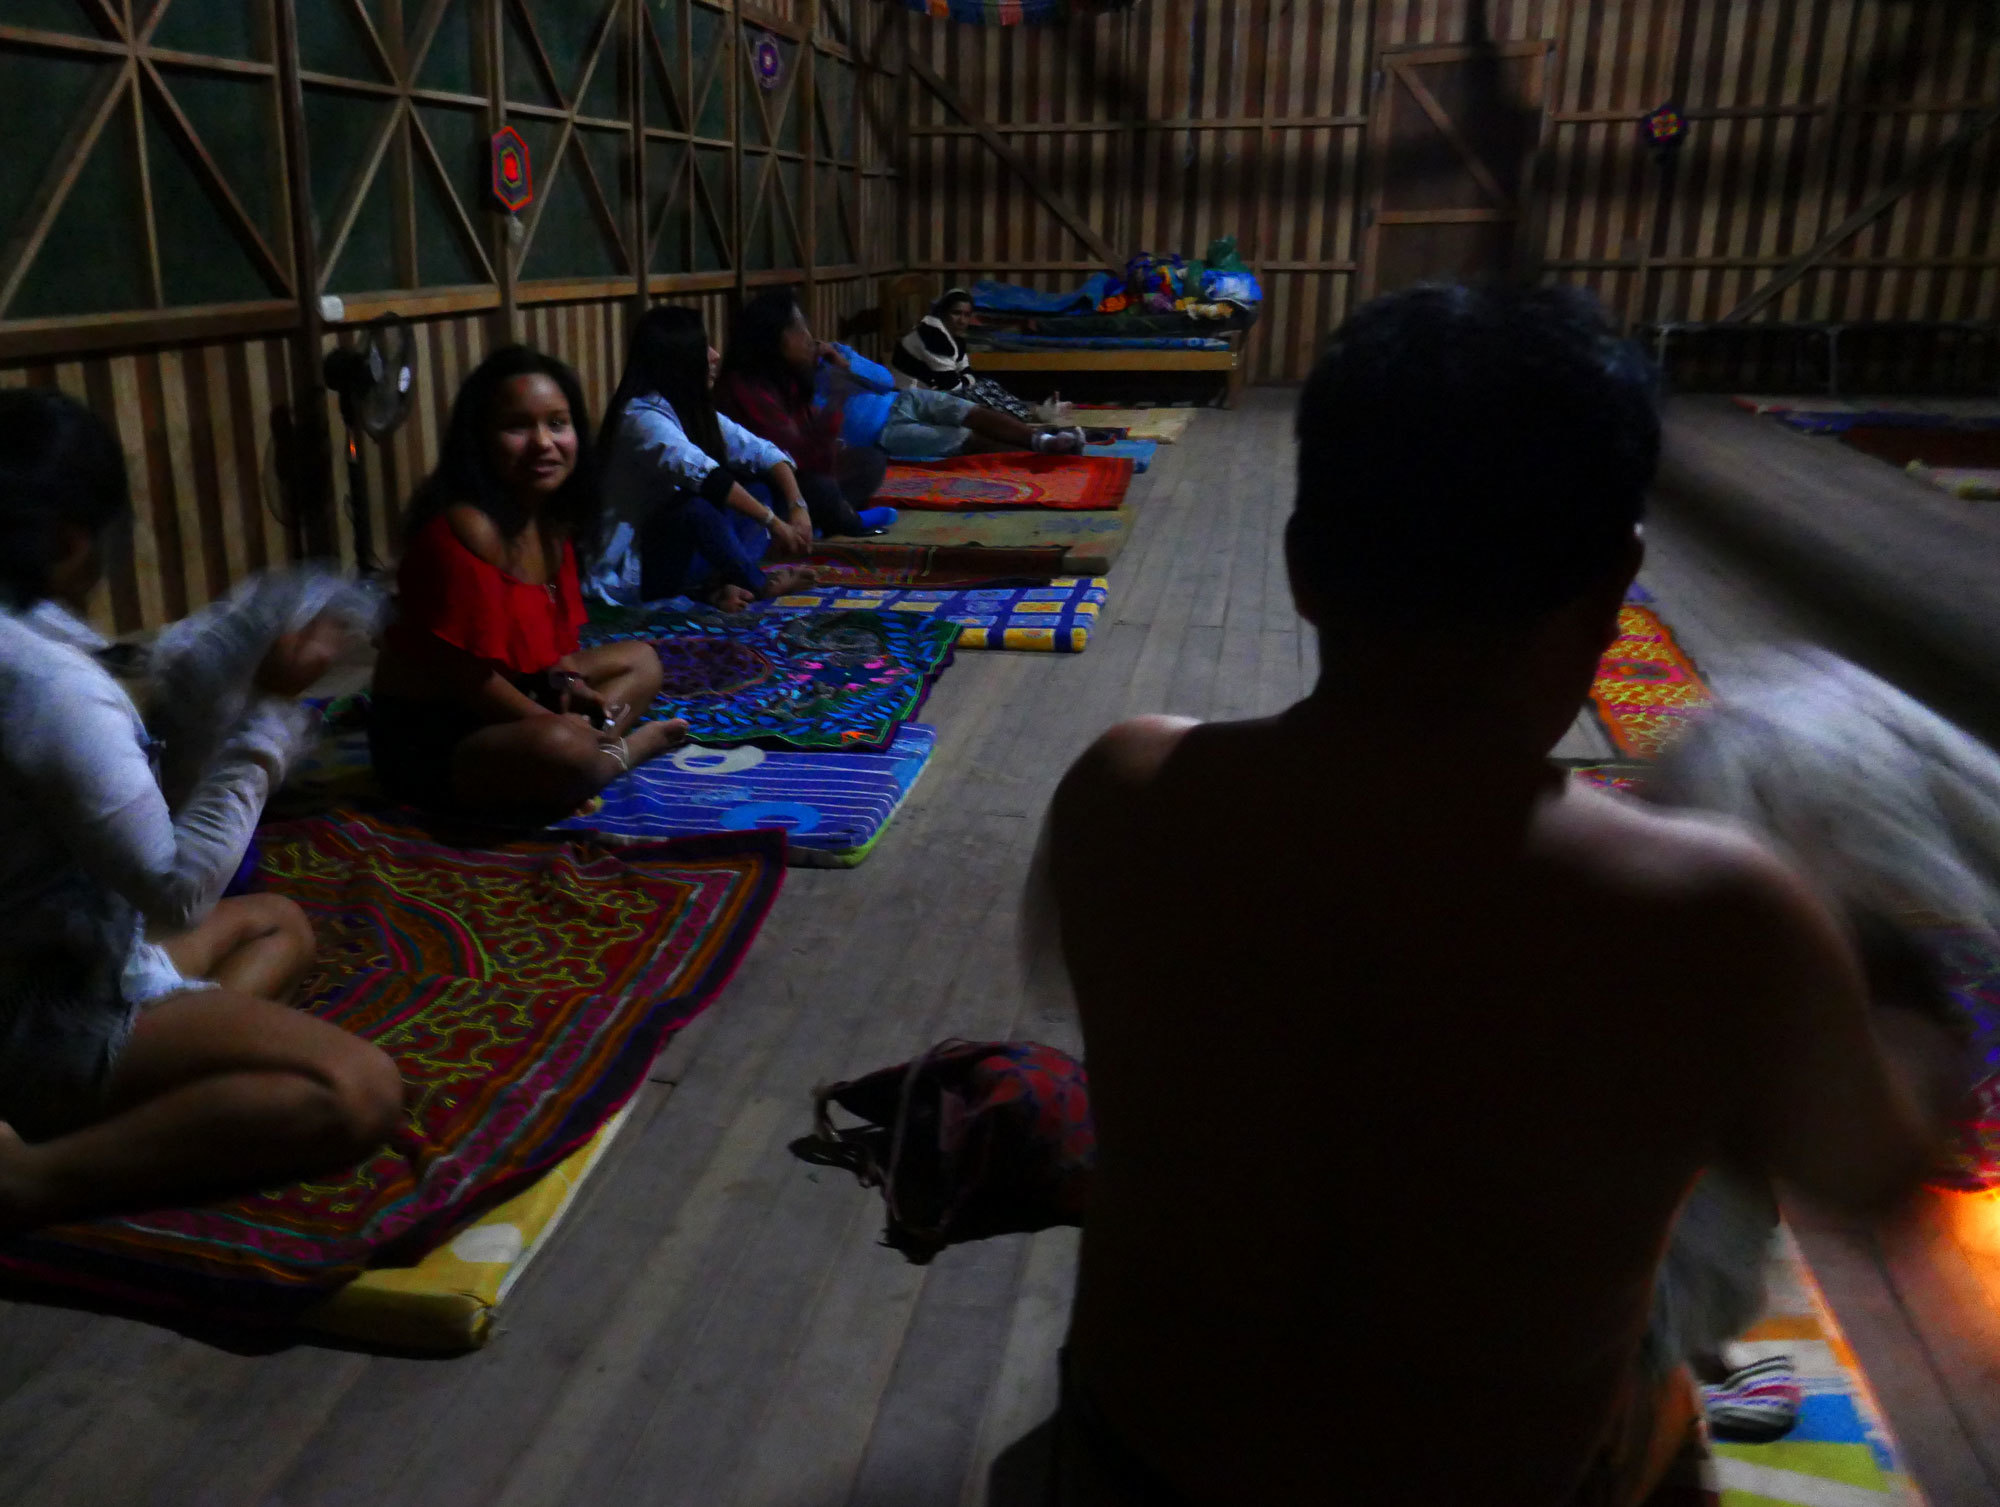 An ayahuasca trip can take several hours. Participants lie on mats in the dark and fall into a dreamlike state while a shaman sings spiritual songs. (Mark Kelley/CBC)